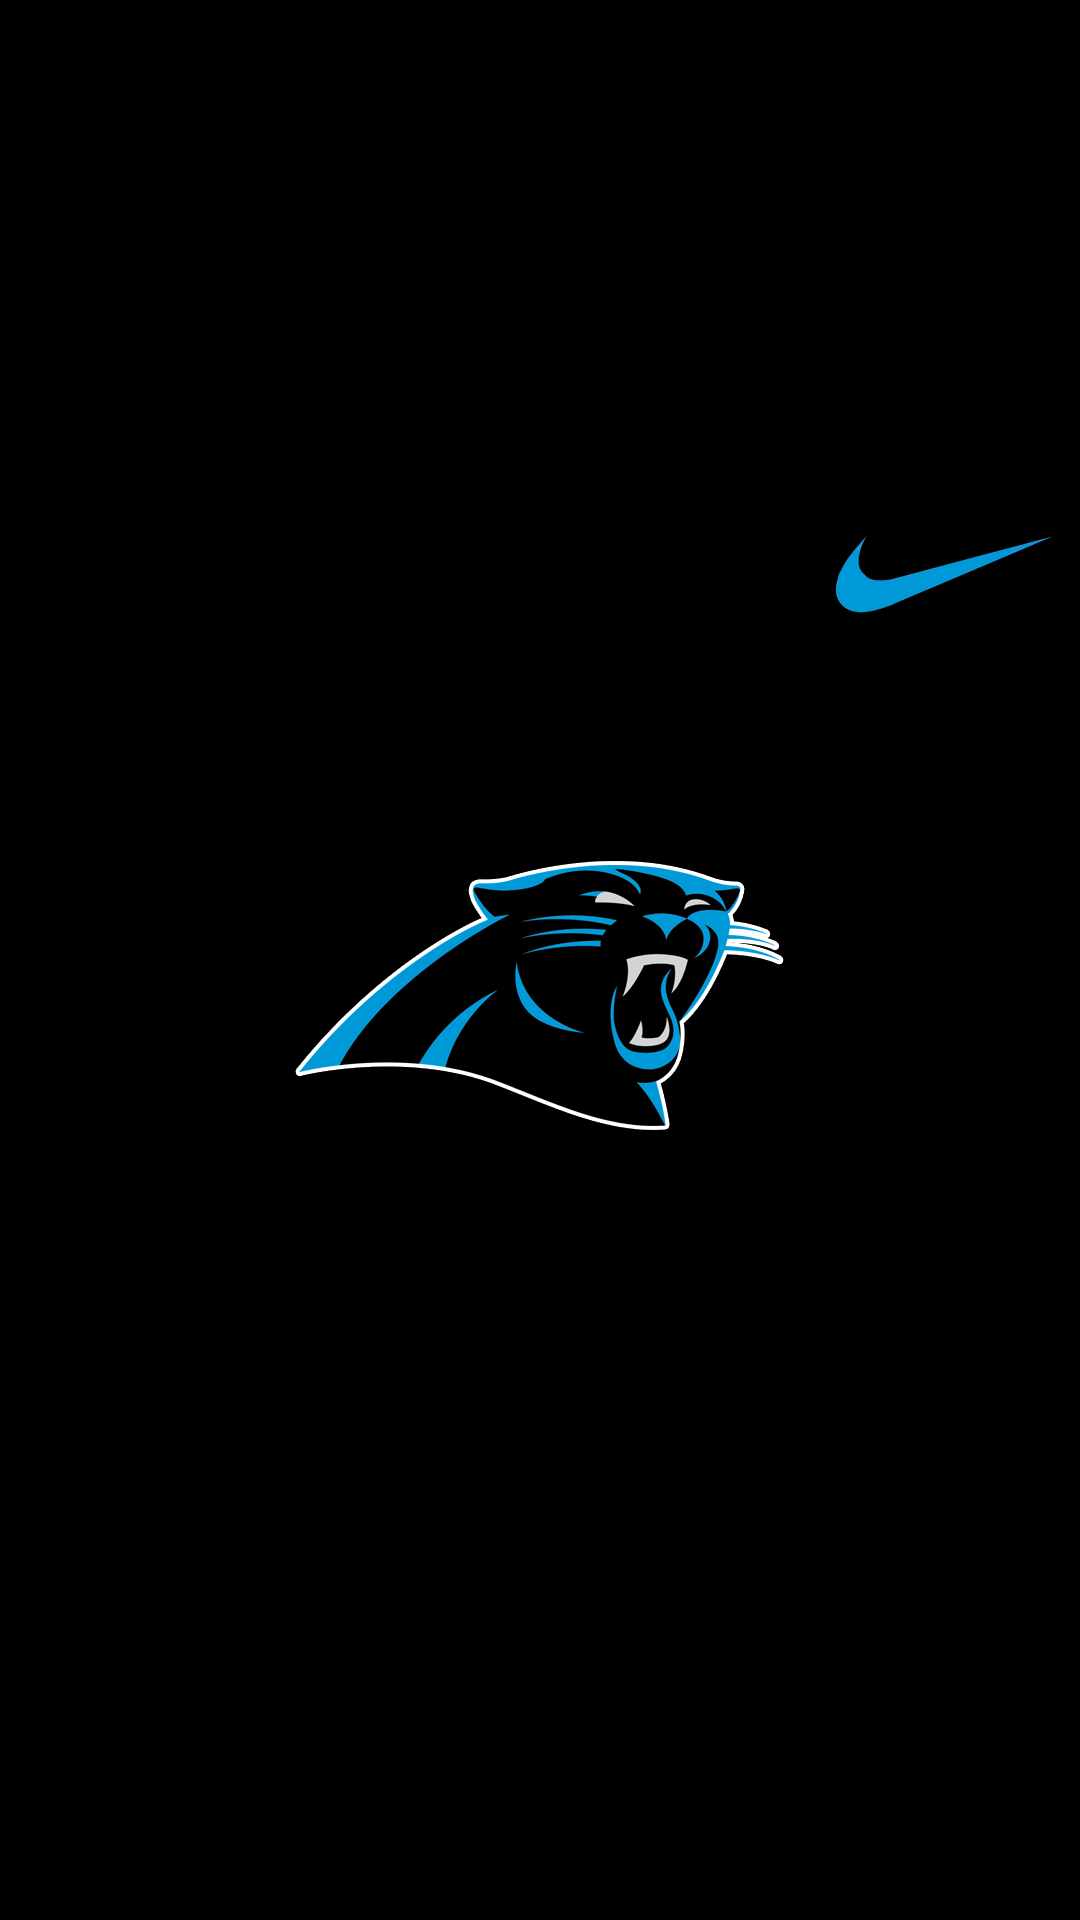 HD Nike Backgrounds for Iphone